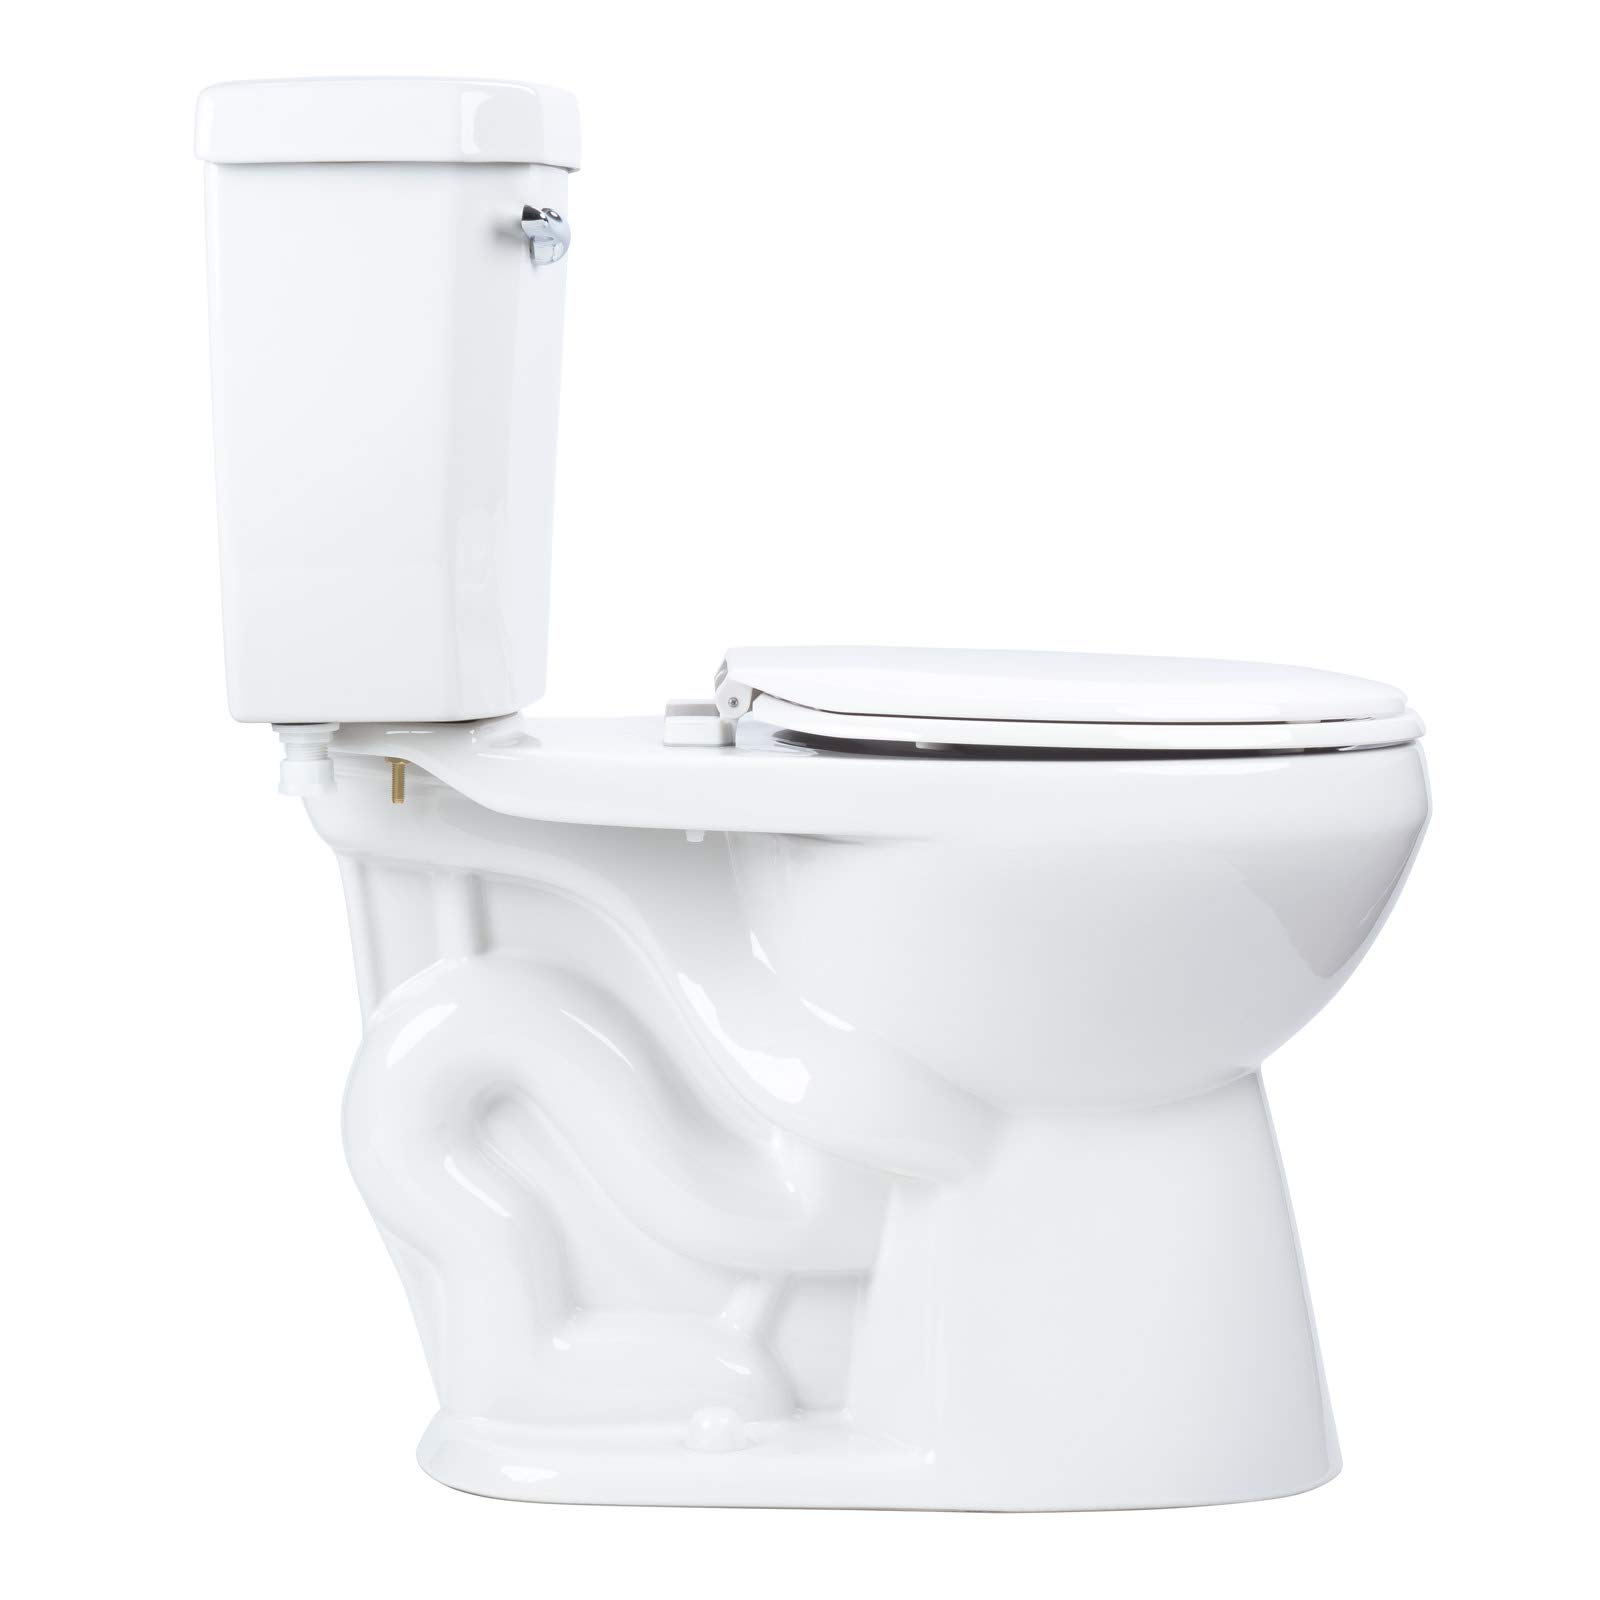 Miseno MNO1500C High Efficiency 1.28 GPF Two-Piece Round Chair Height Toilet with Seat and Wax Ring Included by Miseno